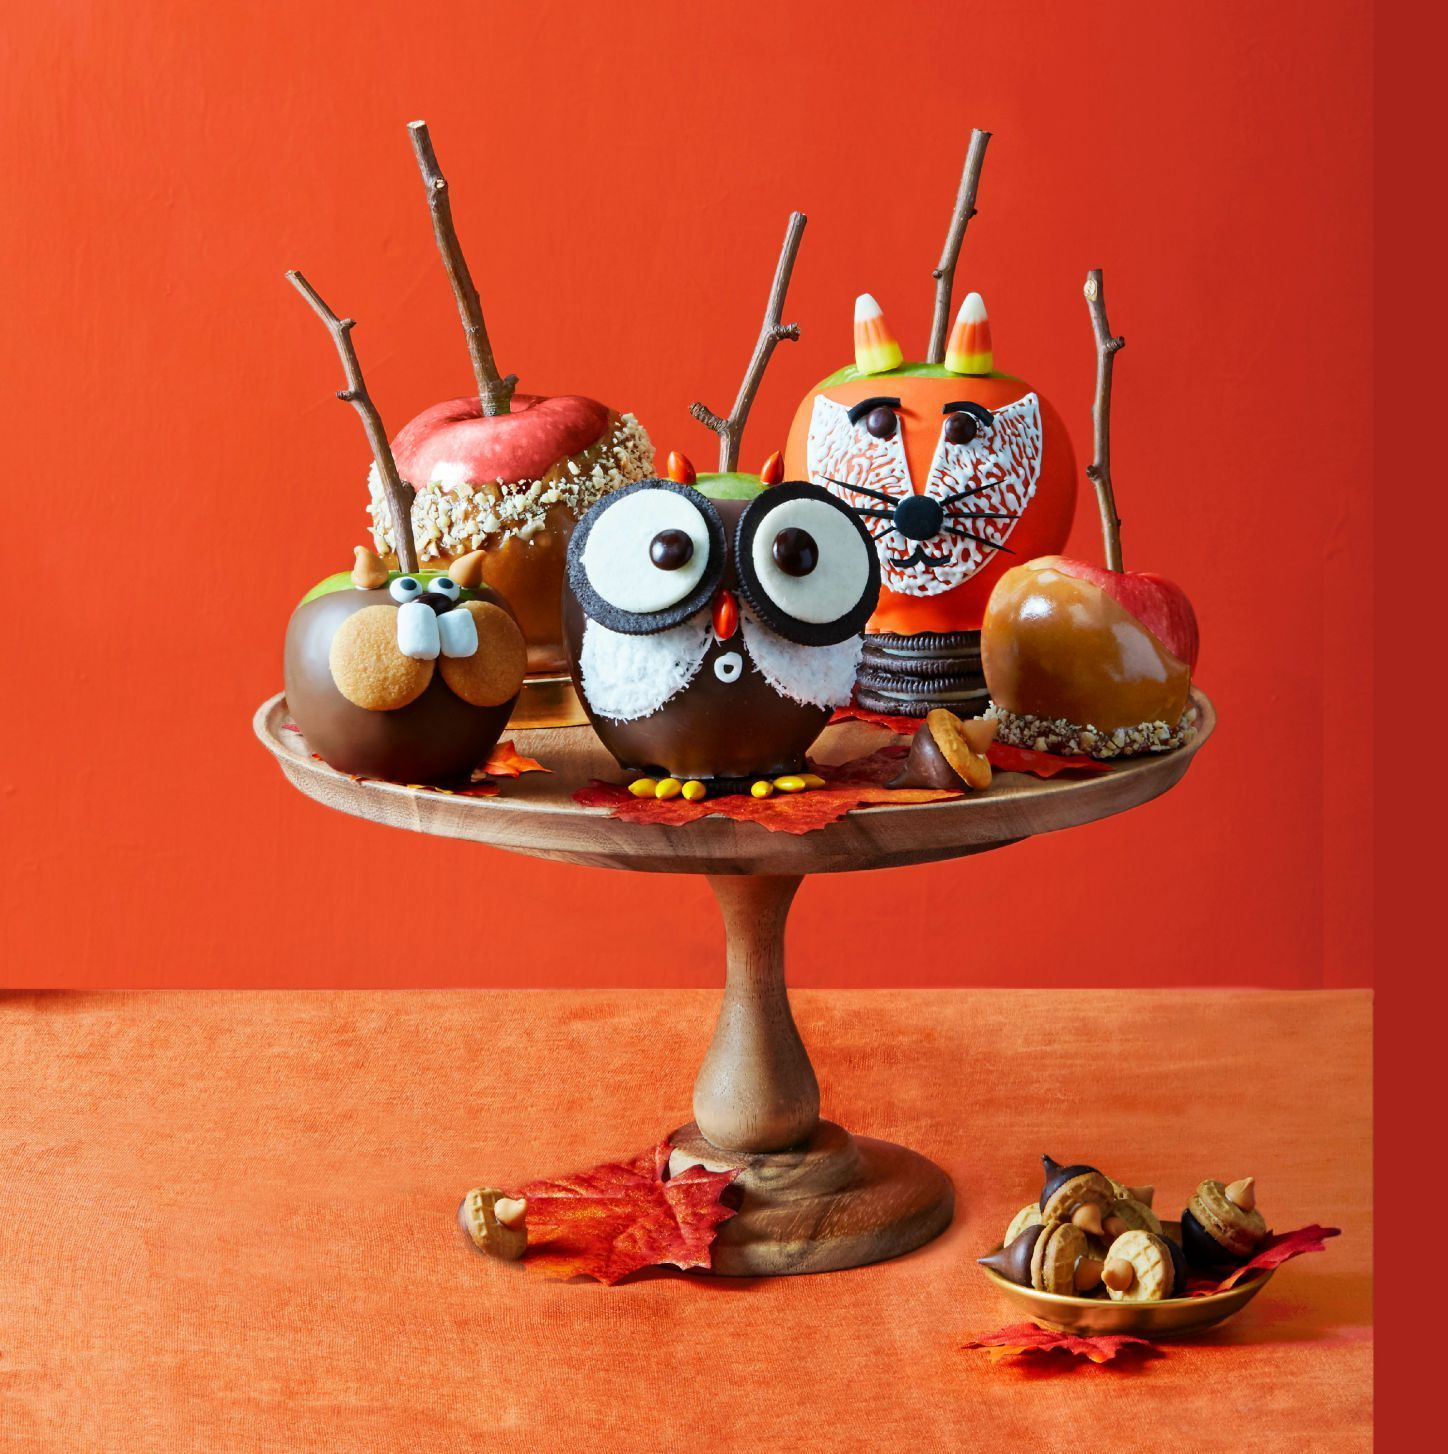 Candy Apples Recipe in 2020 Candy apple recipe, Candy